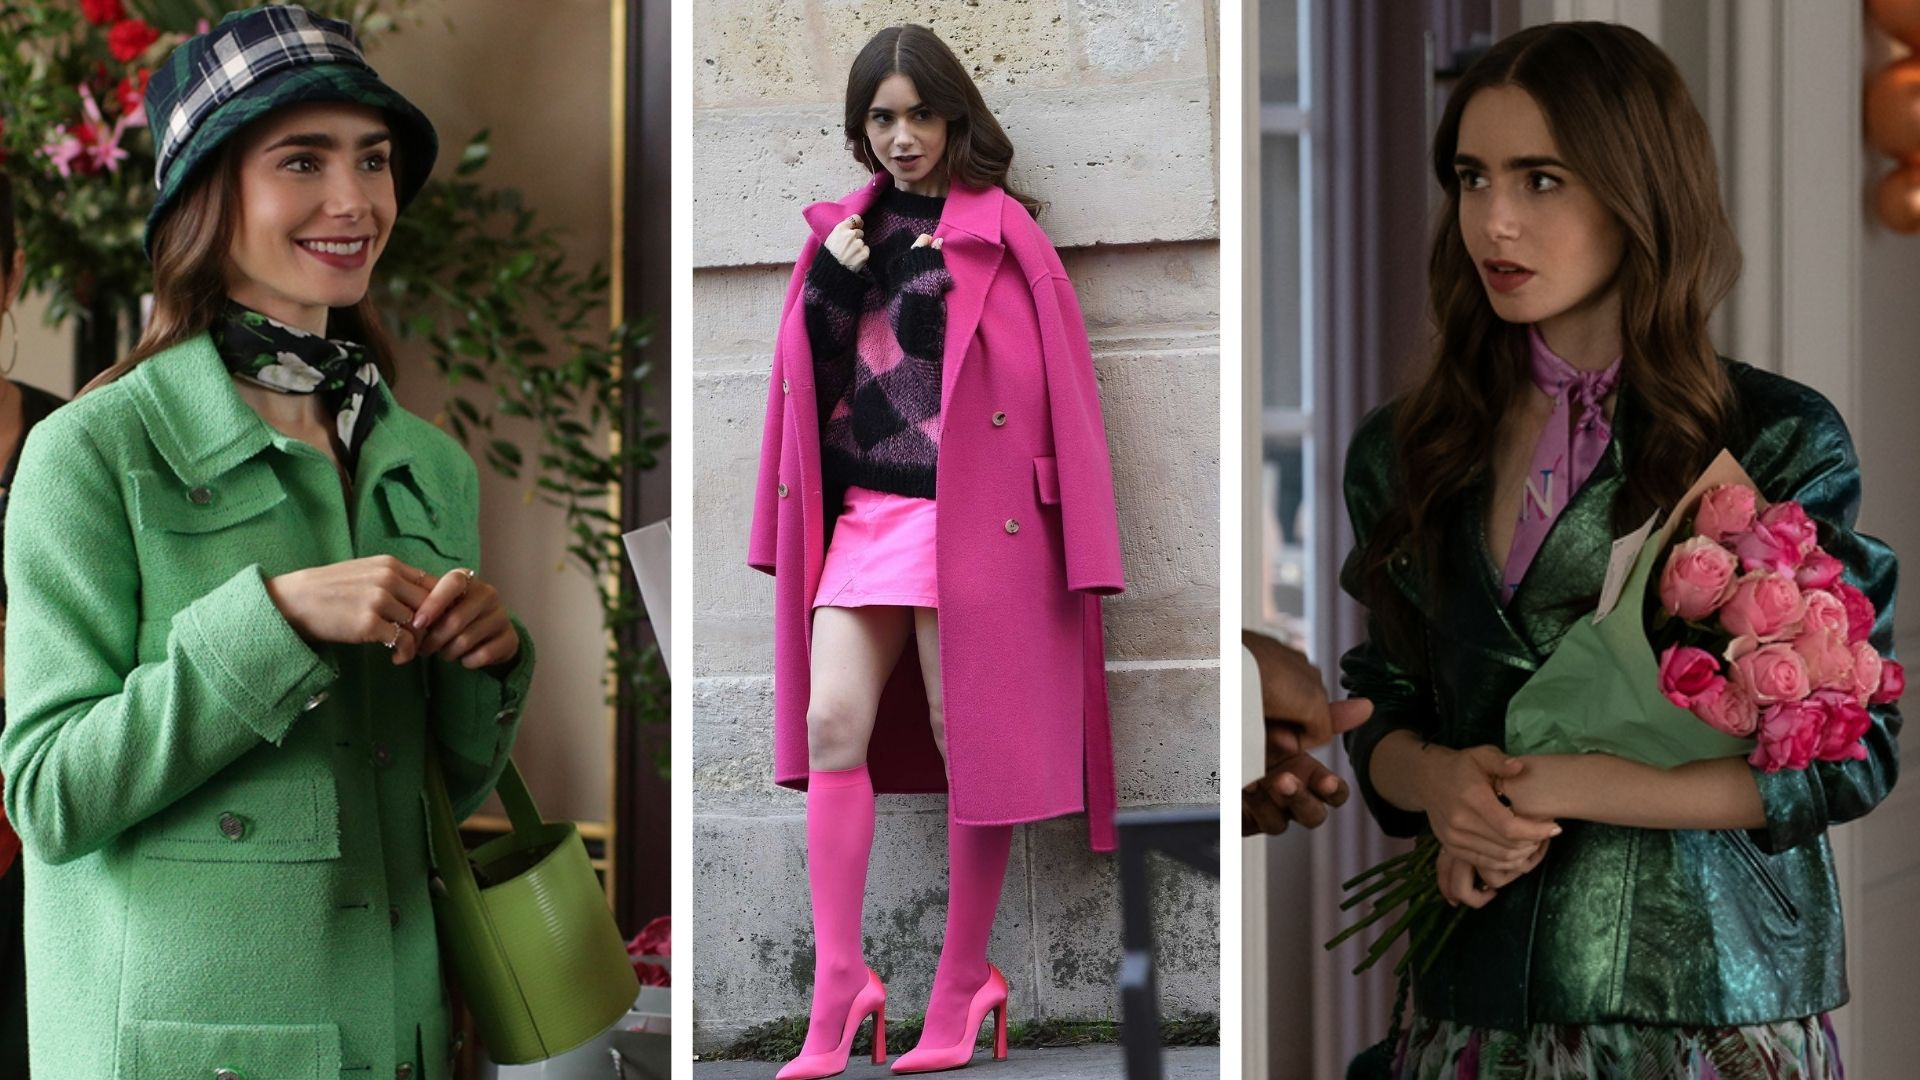 7 Things Fashion Retailers Can Learn From Netflix's Emily In Paris